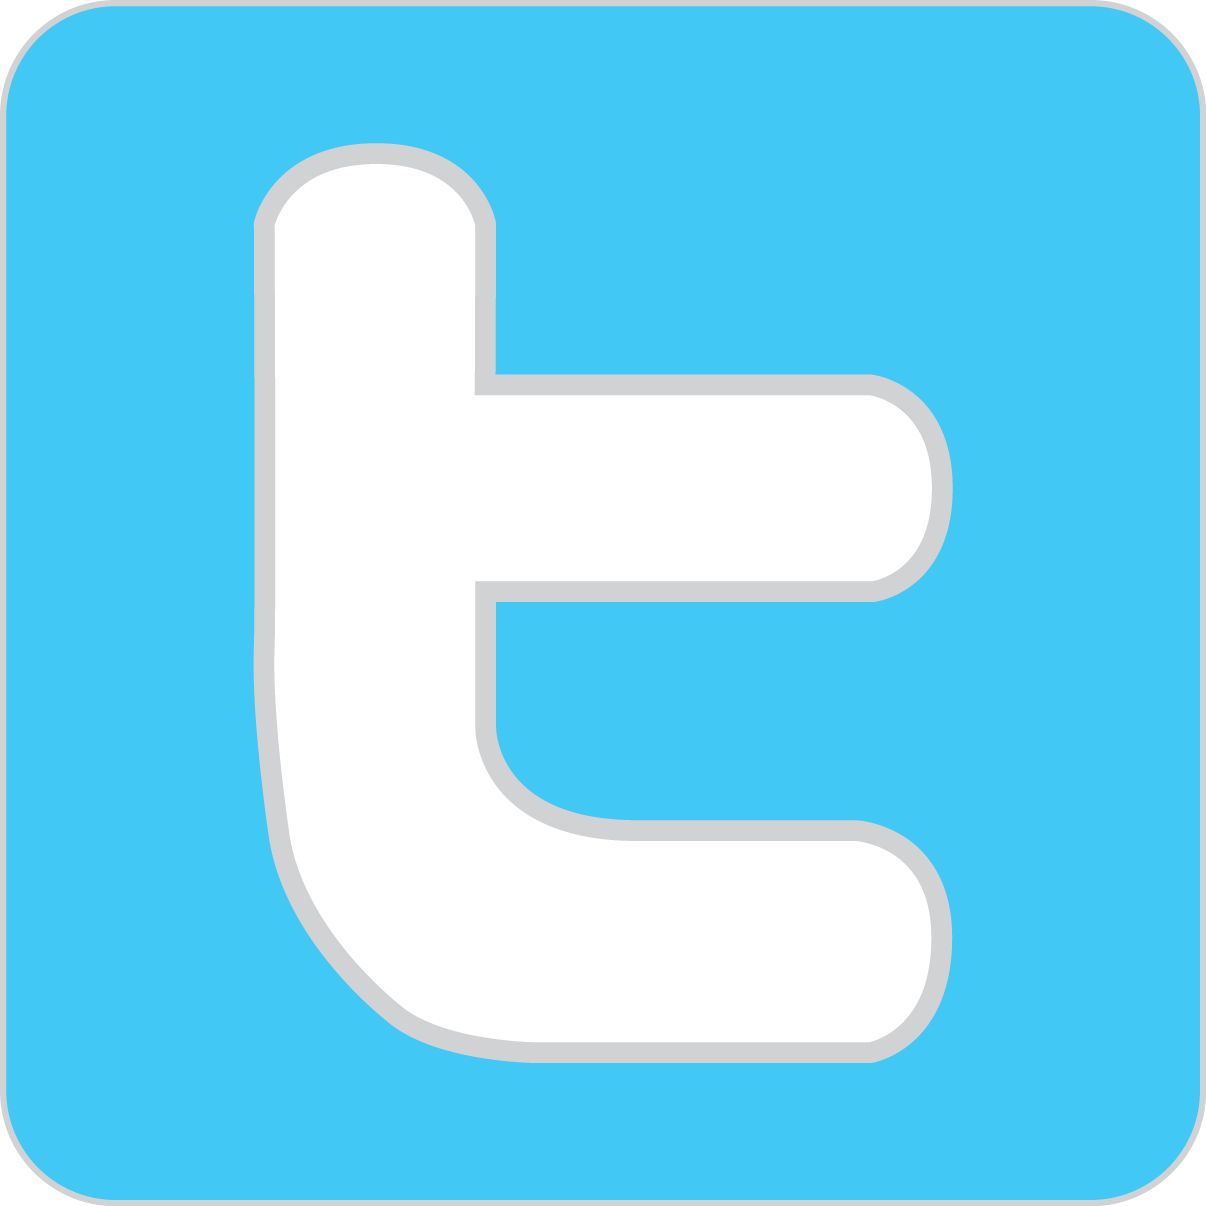 Image of twitter icon